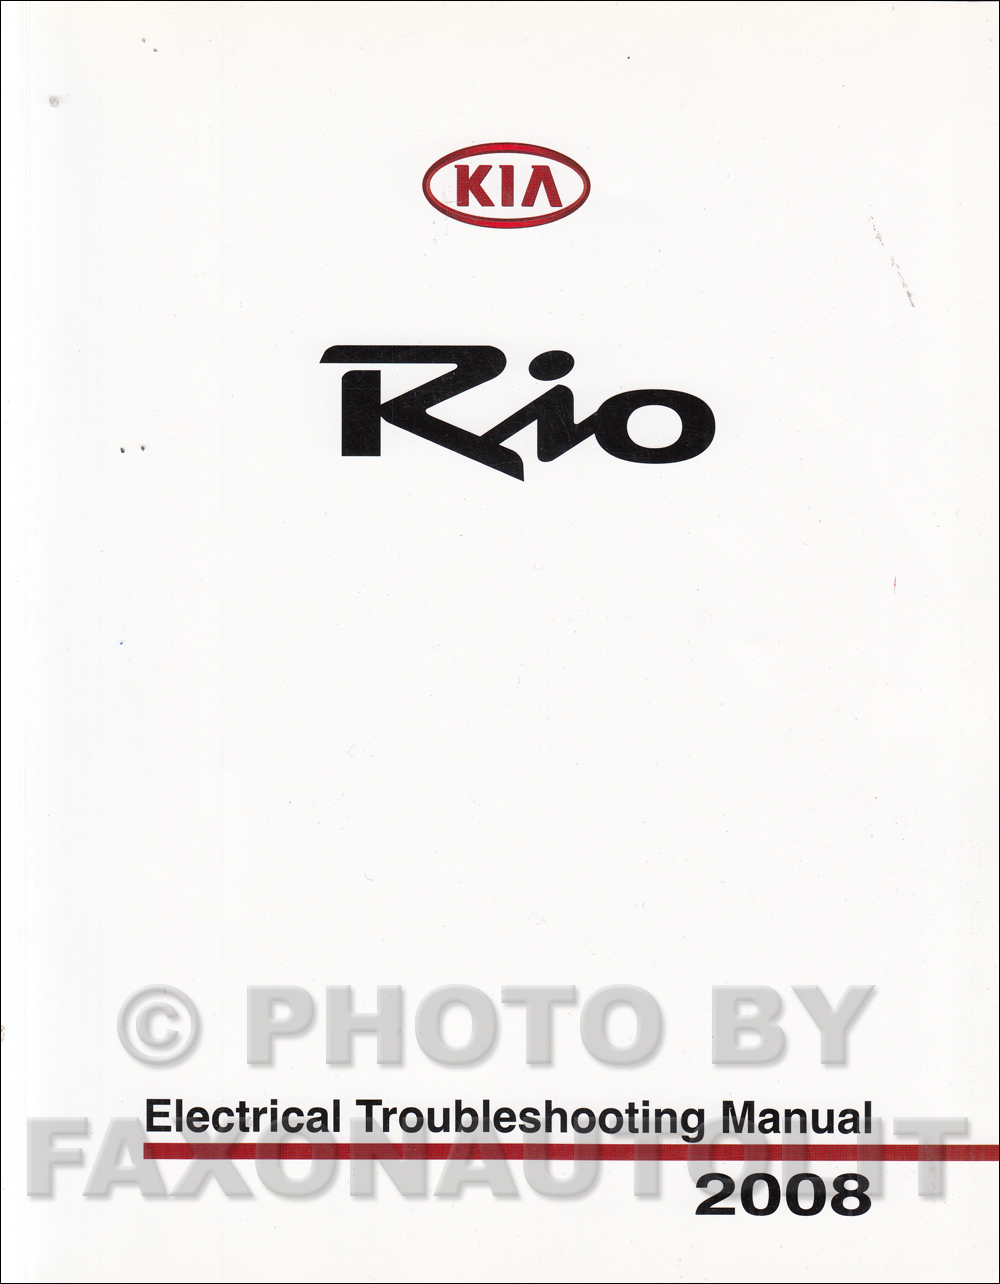 2008 Kia Rio Electrical Troubleshooting Manual Original Kia Rio Ecu Wiring Diagram on chrysler aspen wiring diagram, saturn aura wiring diagram, saturn astra wiring diagram, suzuki sierra wiring diagram, kia rio shift solenoid, volkswagen golf wiring diagram, honda ascot wiring diagram, volvo amazon wiring diagram, chevrolet volt wiring diagram, kia automotive wiring diagrams, chevrolet hhr wiring diagram, kia rio ignition switch, fiat uno wiring diagram, suzuki x90 wiring diagram, dodge challenger wiring diagram, nissan 370z wiring diagram, chrysler 300m wiring diagram, geo storm wiring diagram, daihatsu rocky wiring diagram, kia rio water pump,